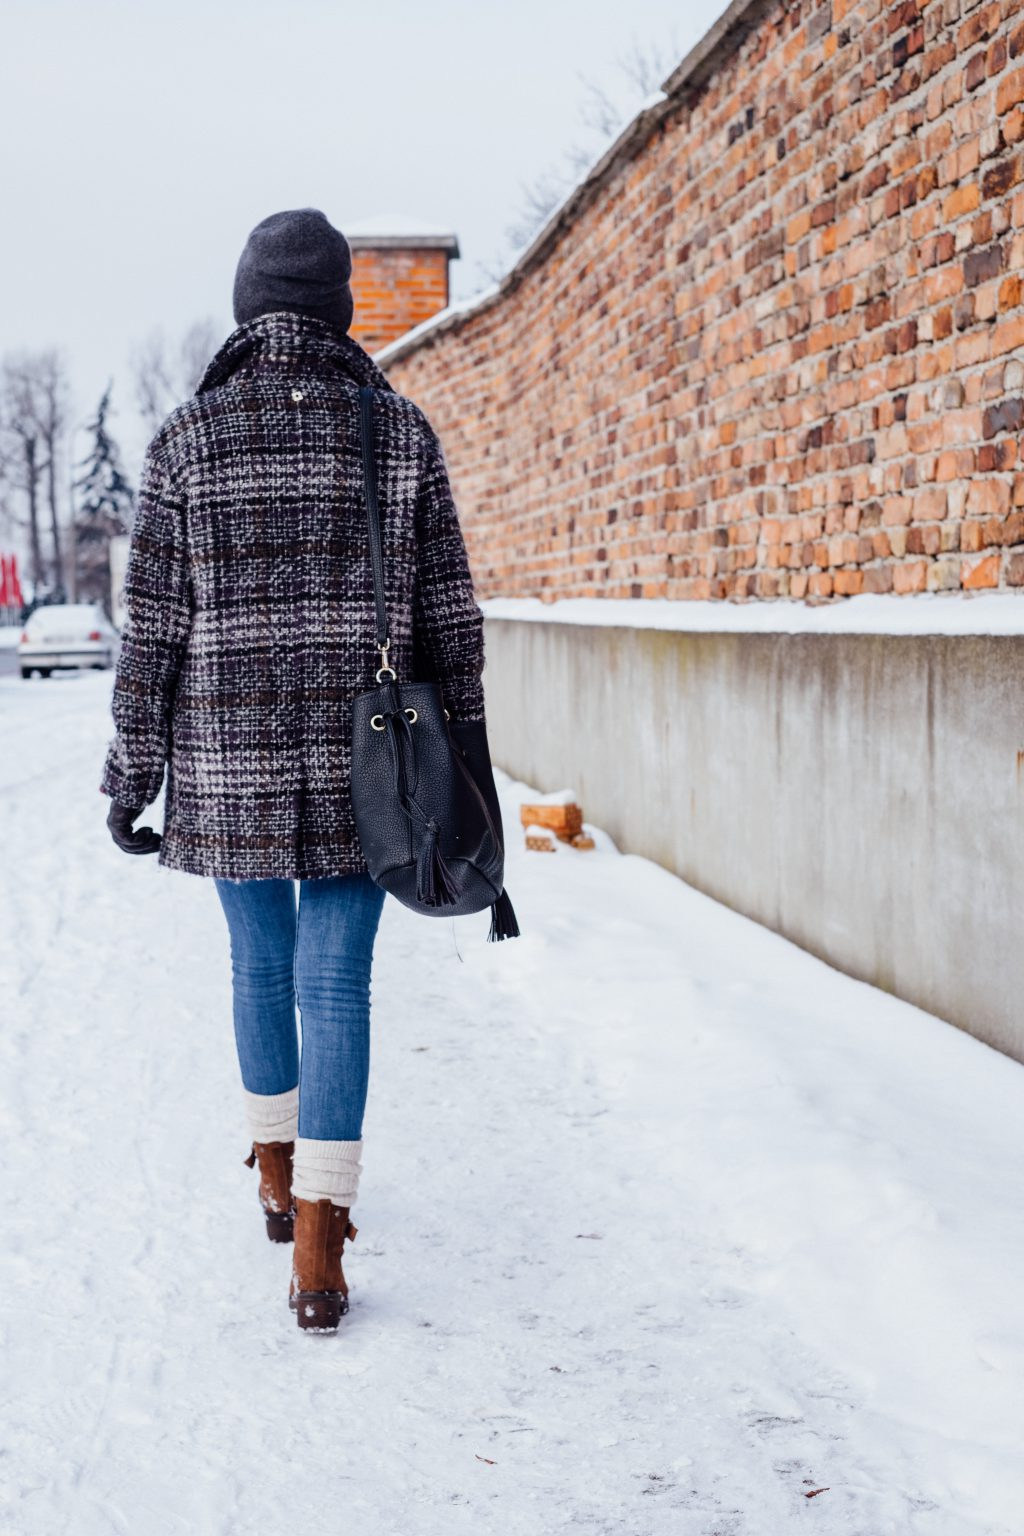 A female walking on a snow-covered pavement - free stock photo